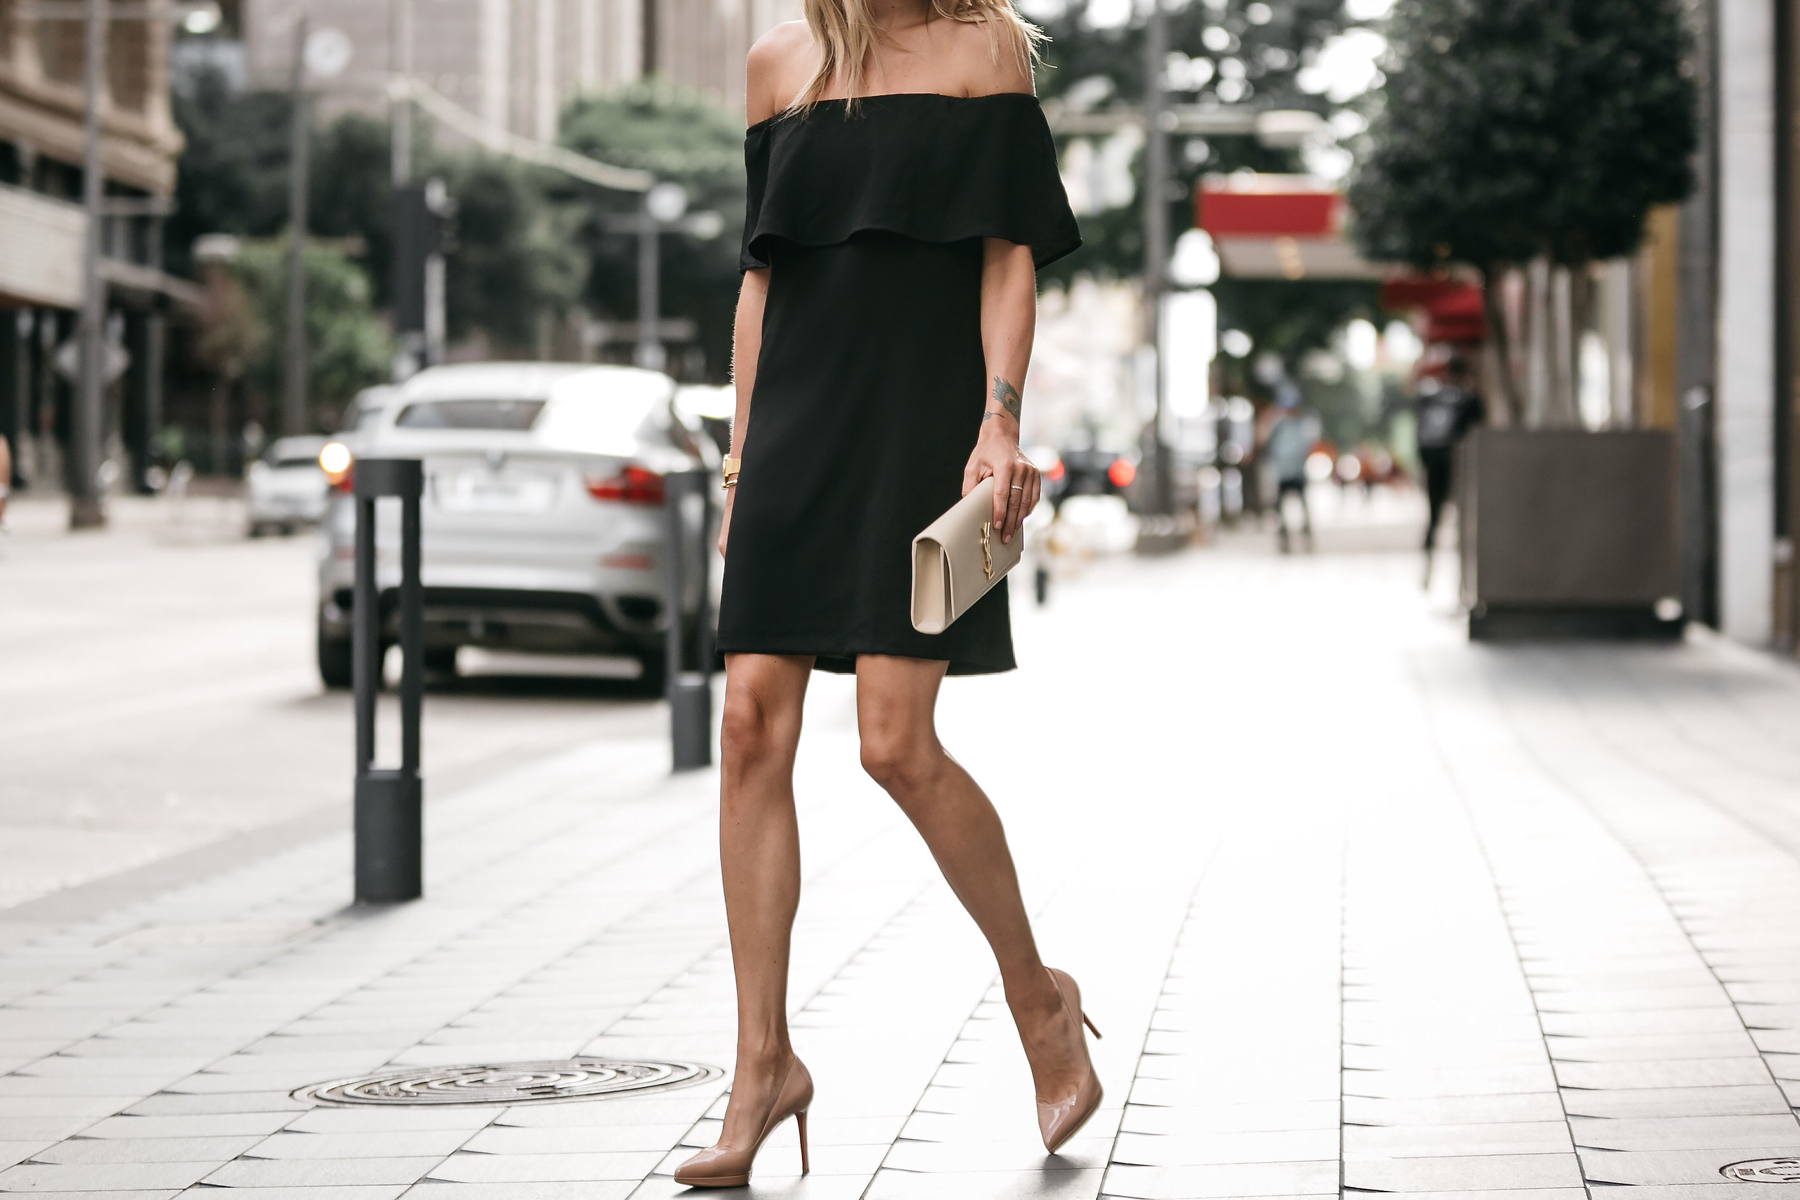 Nordstrom off the shoulder black dress YSL nude clutch christian louboutin nude pumps little black dress street style dallas blogger fashion blogger